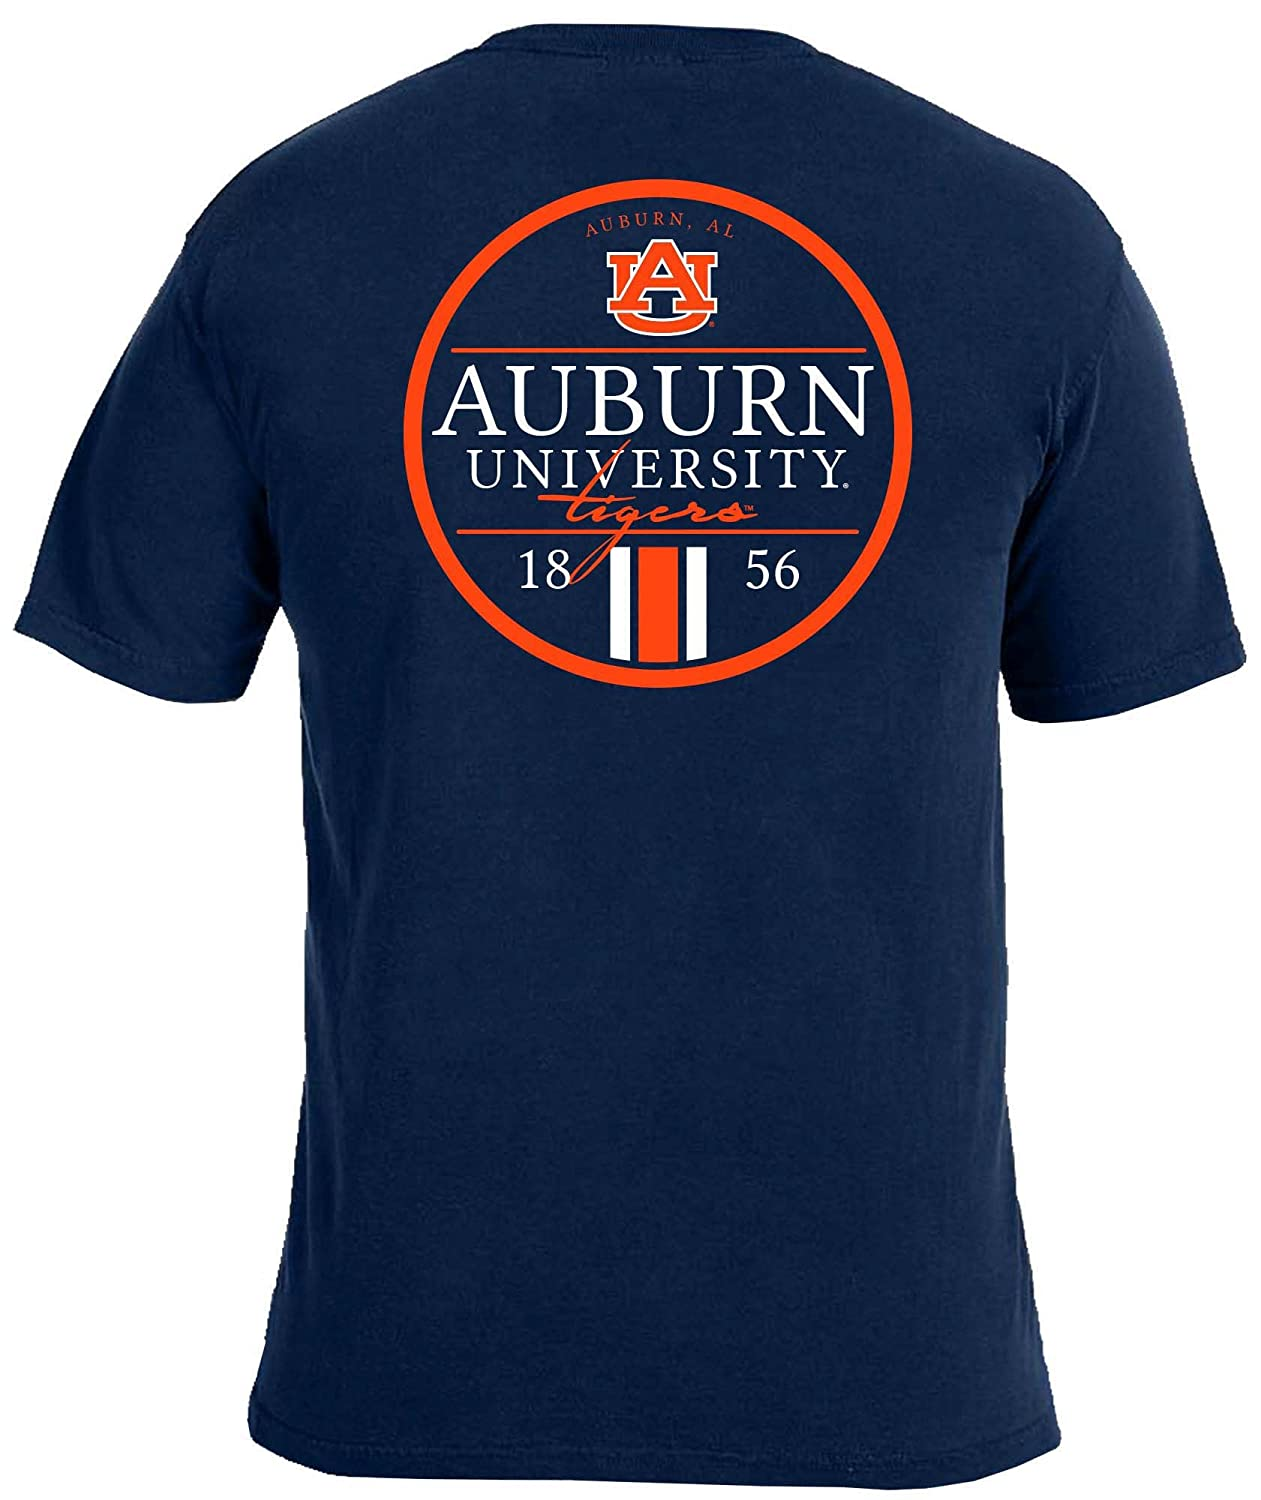 Image One Adult Unisexs NCAA Simple Circle Lines Short Sleeve Comfort Color Tee